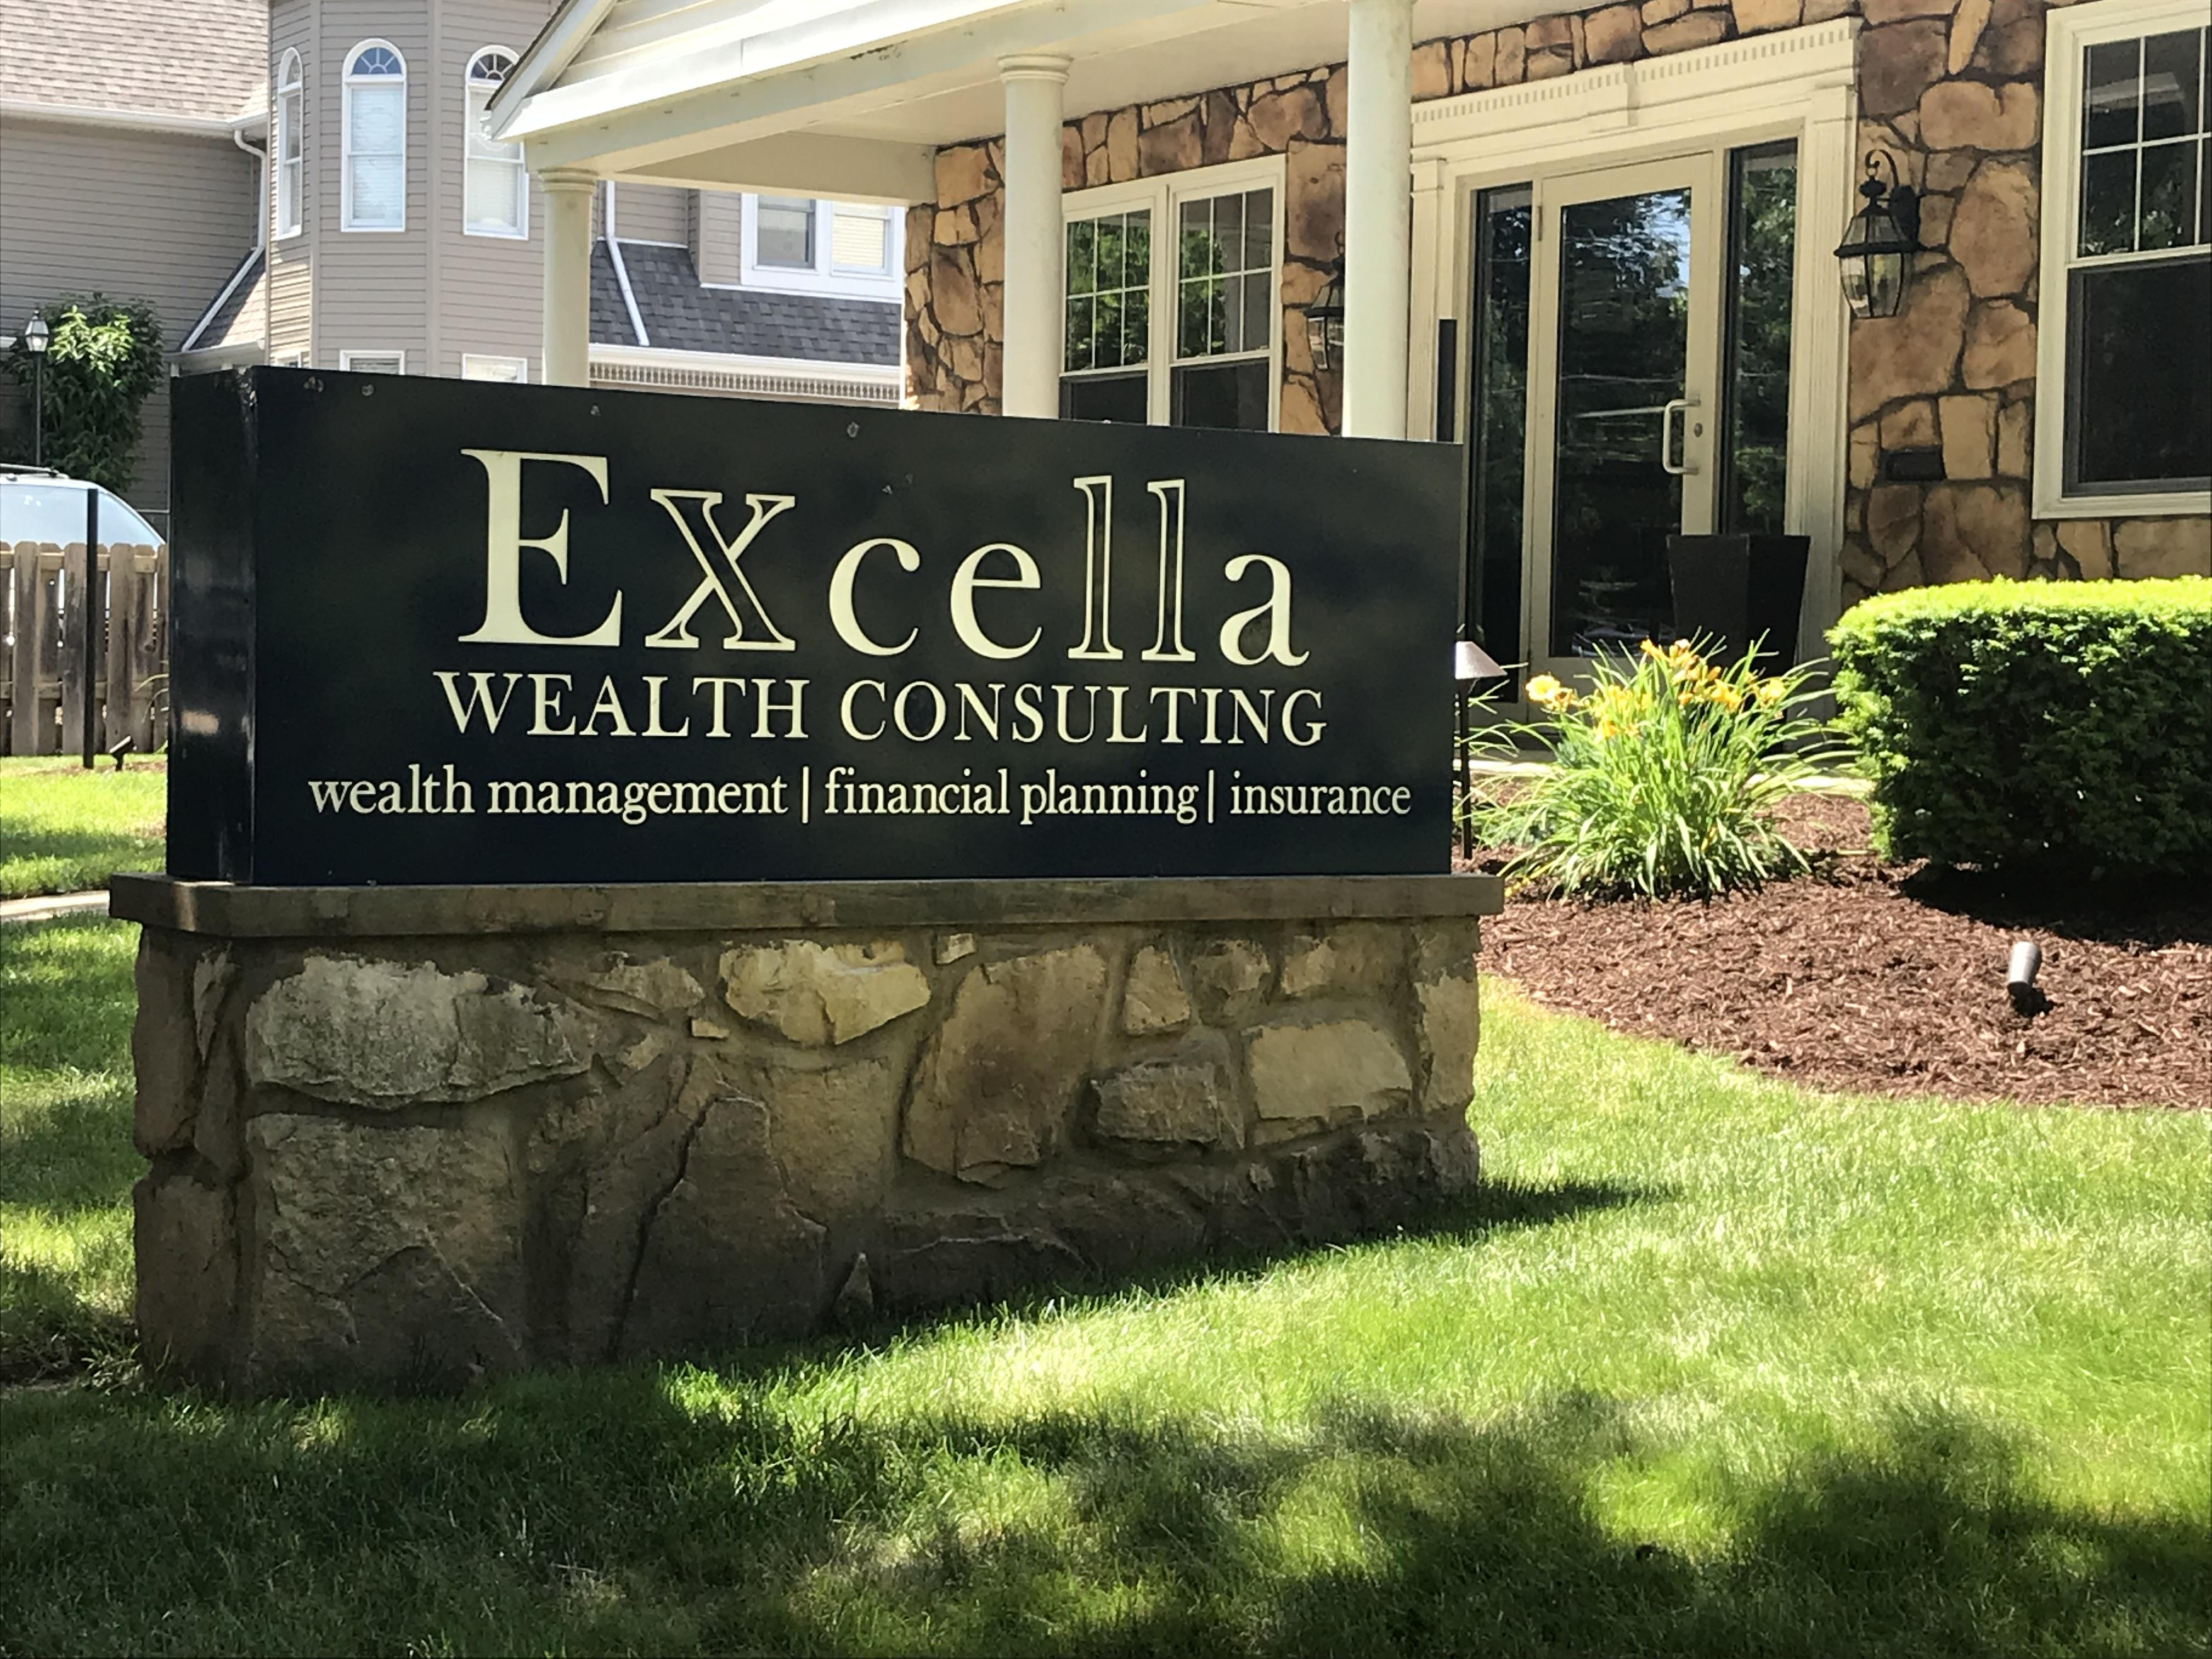 Excella Wealth Consulting image